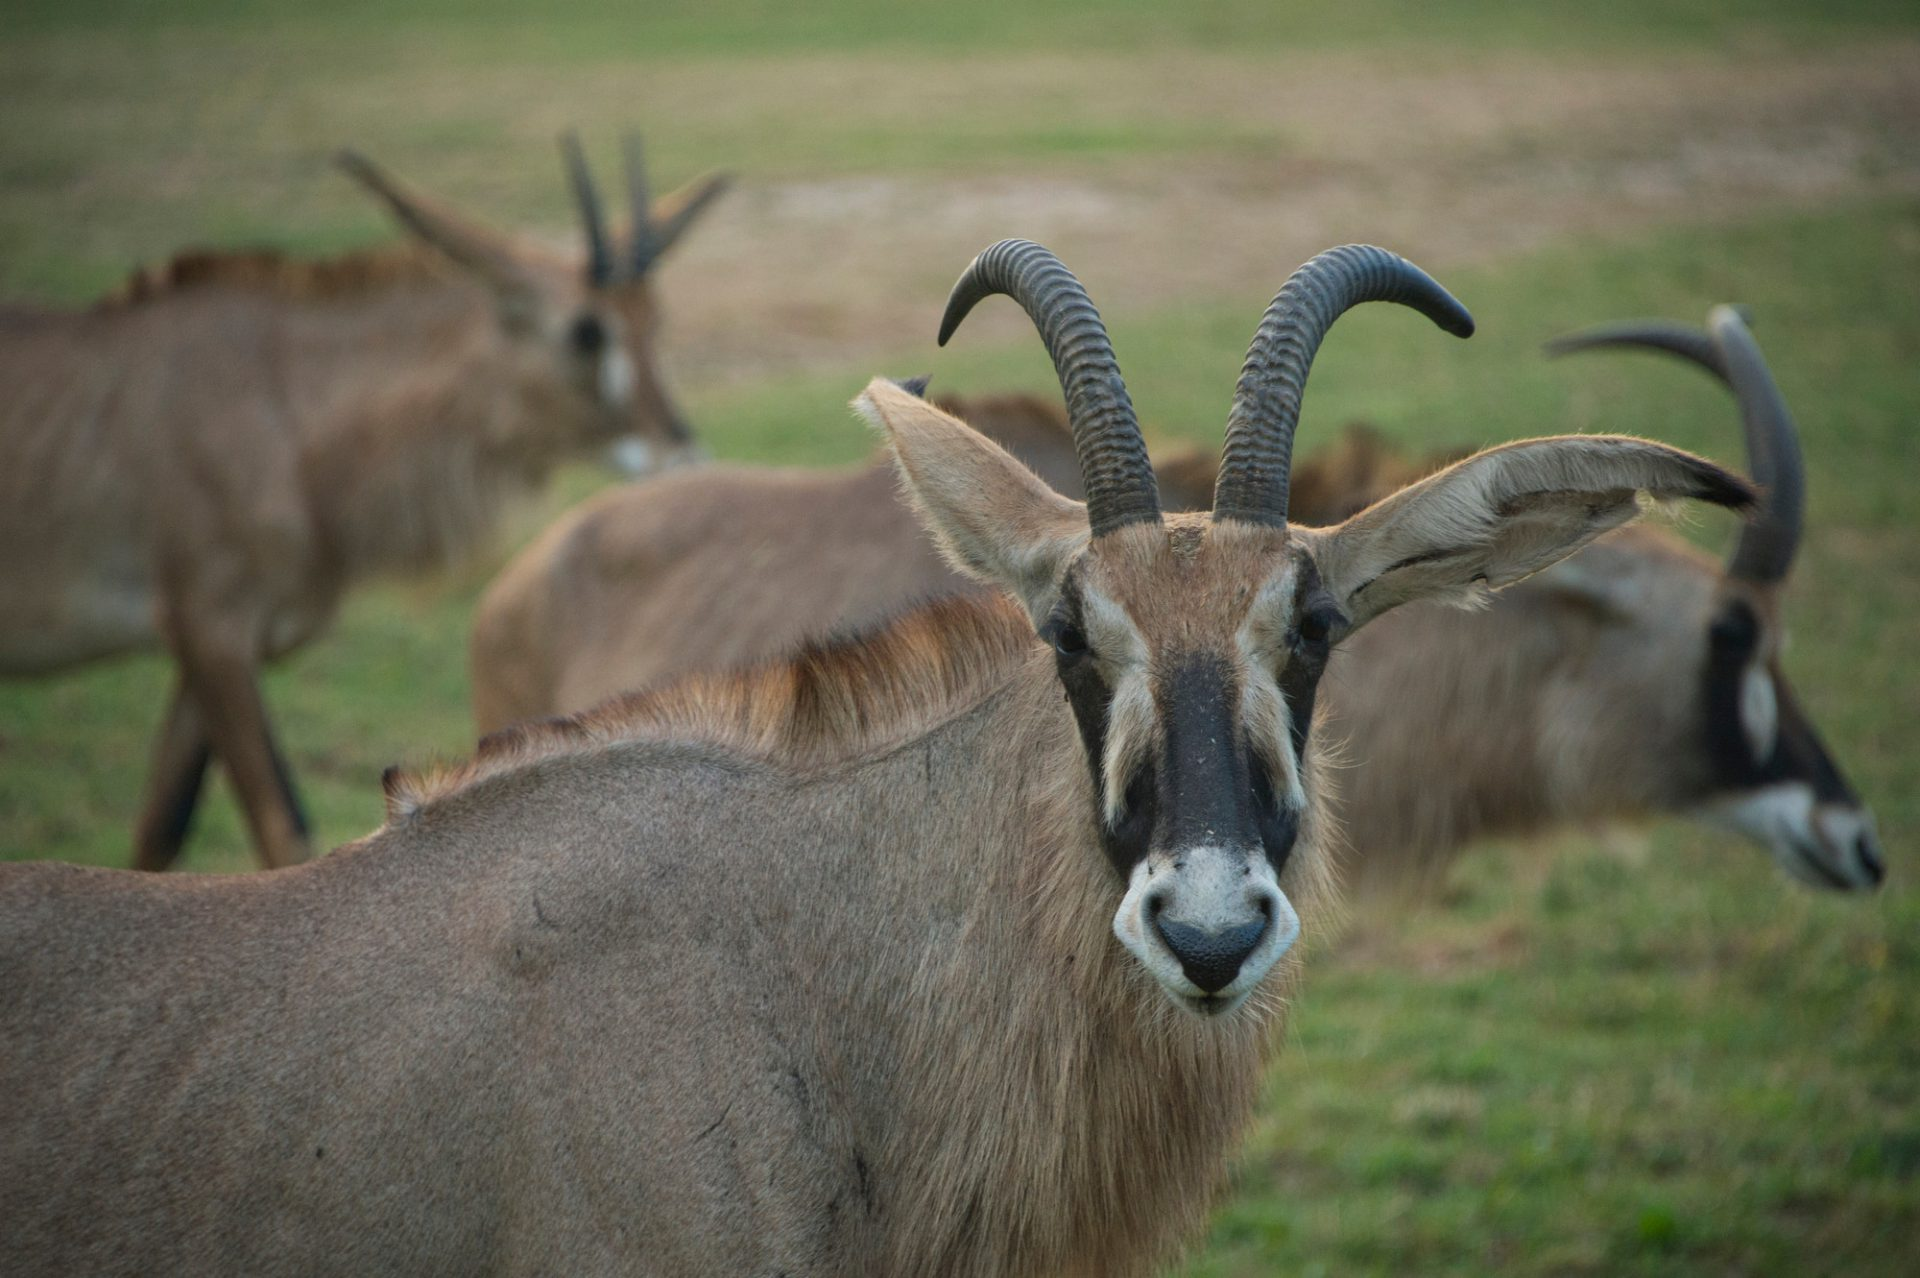 Photo: Roan antelope (Hippotragus equinus) at the Dvur Kralove Zoo.